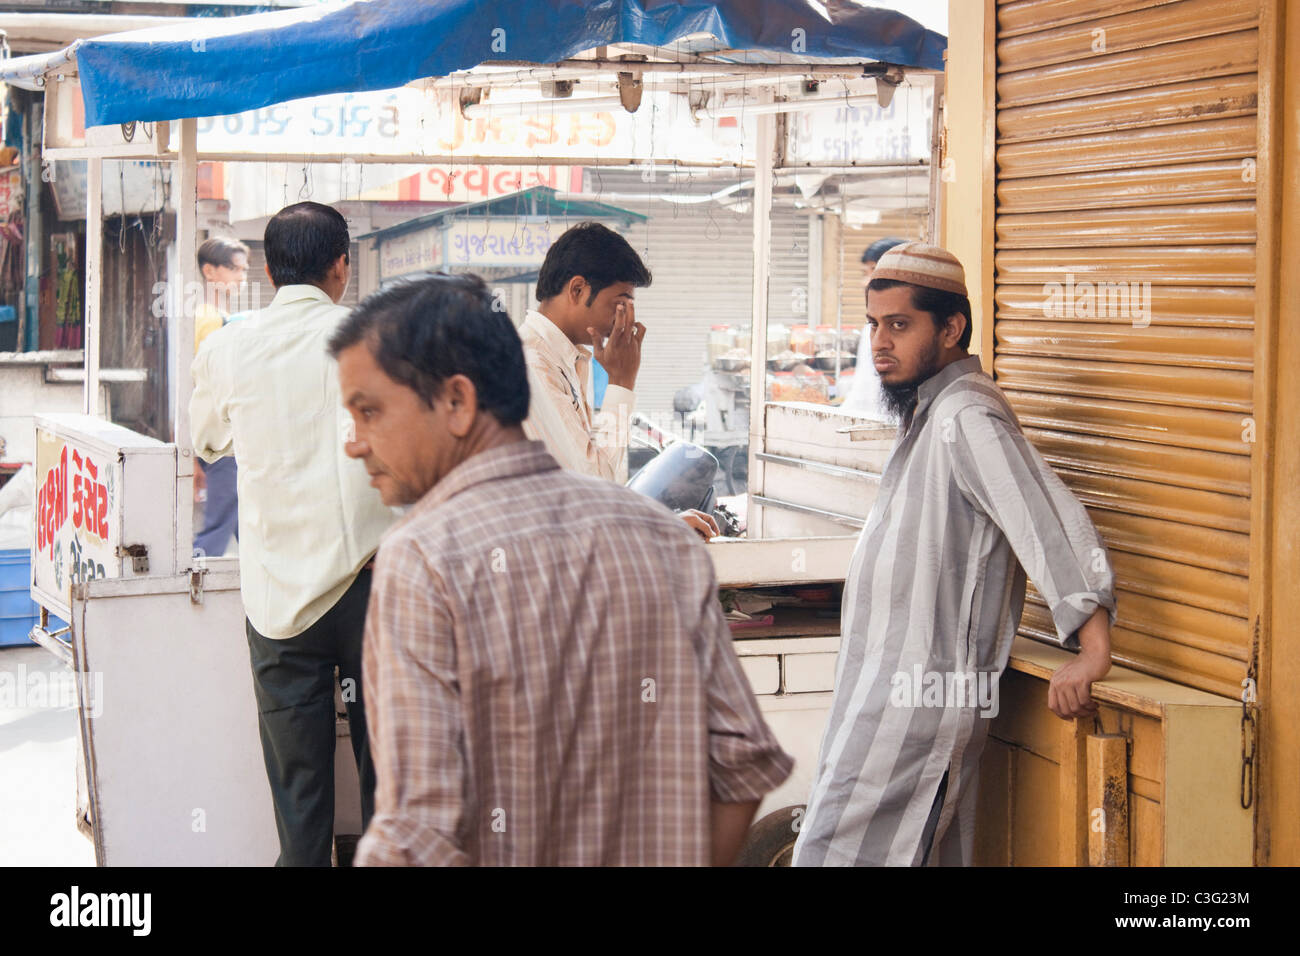 Four men standing in a market, Ahmedabad, Gujarat, India - Stock Image